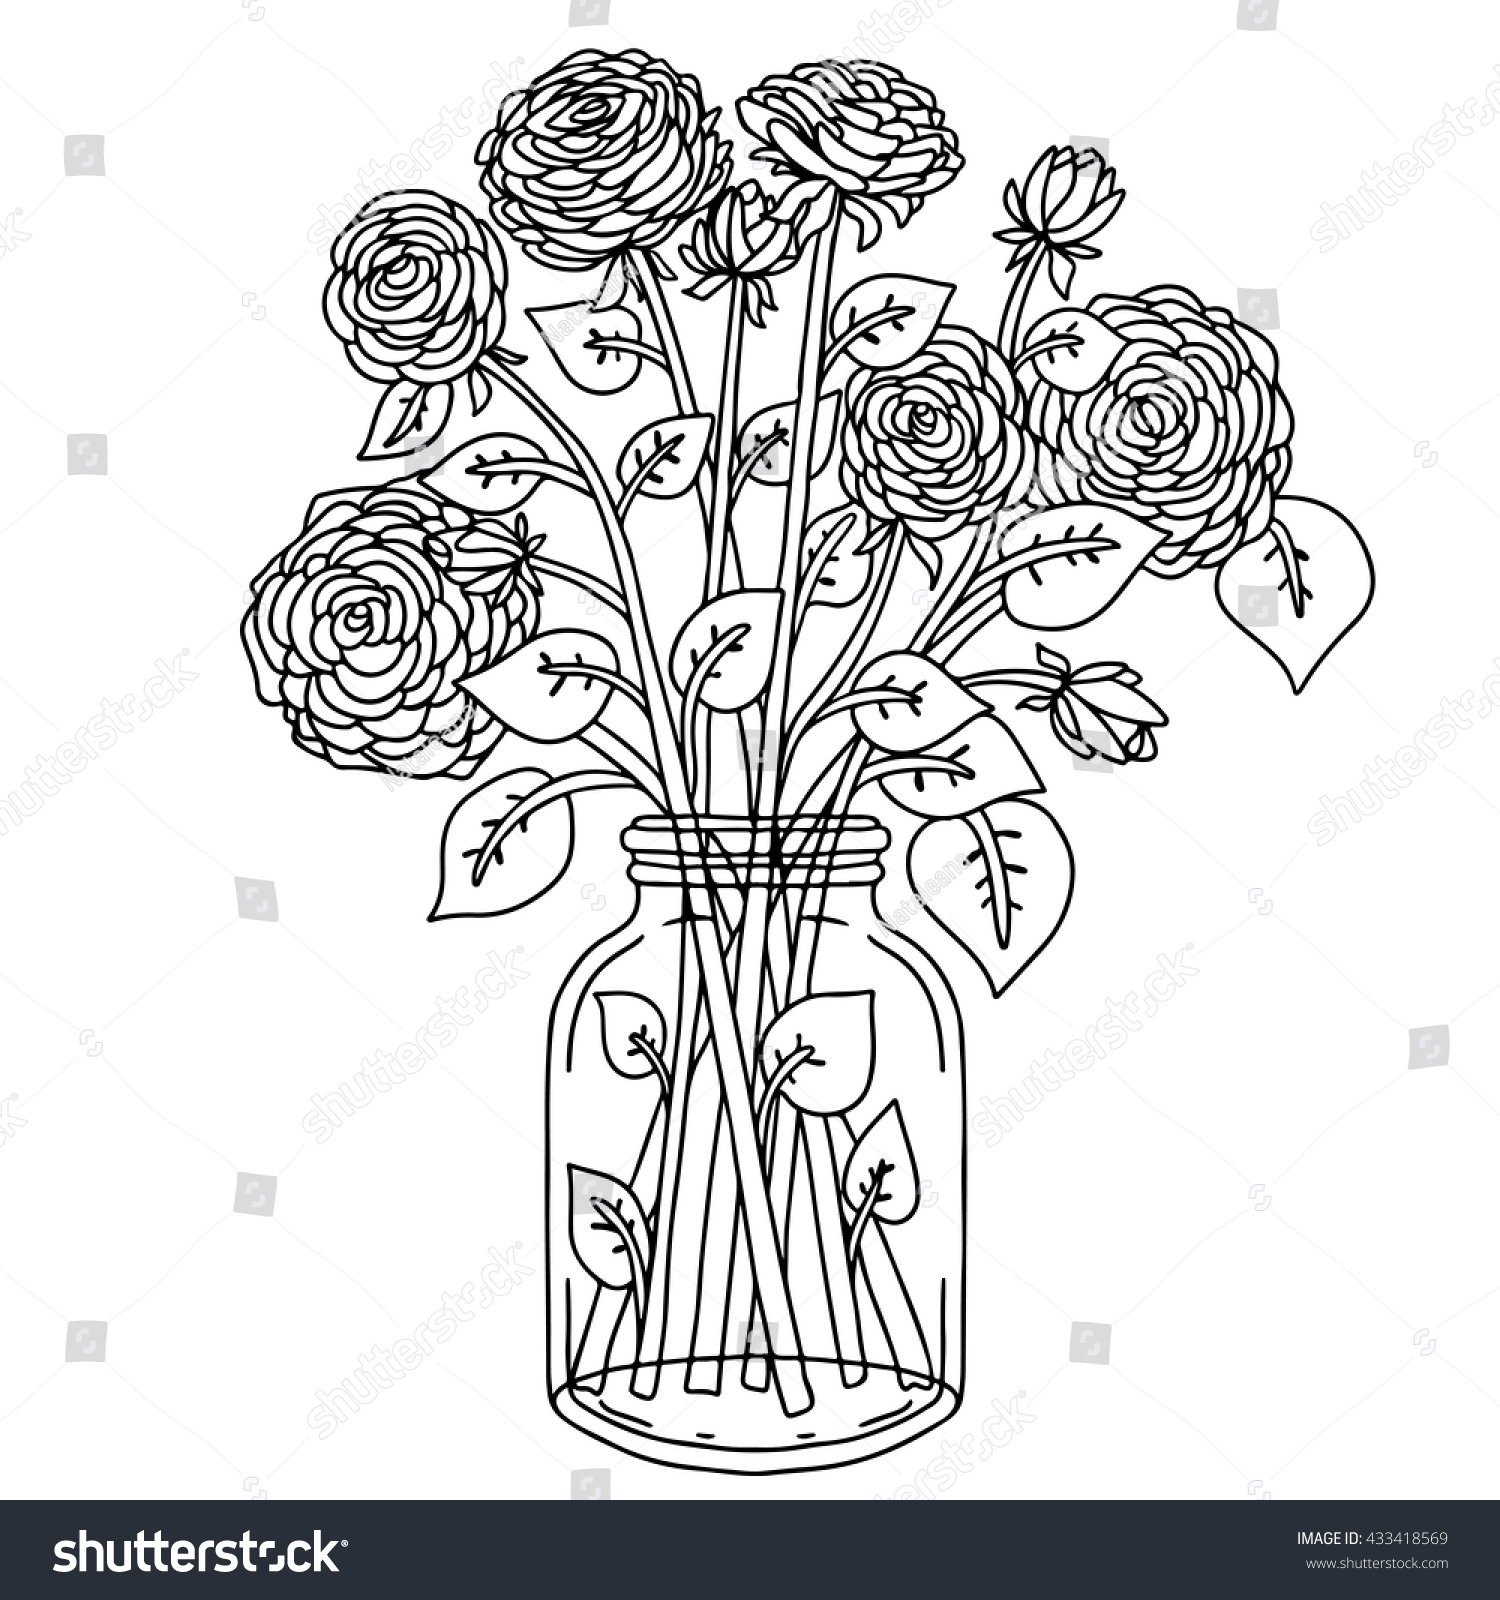 Bouquet Flowers Vase Hand Drawn Black Stock Vector 433418569 ...